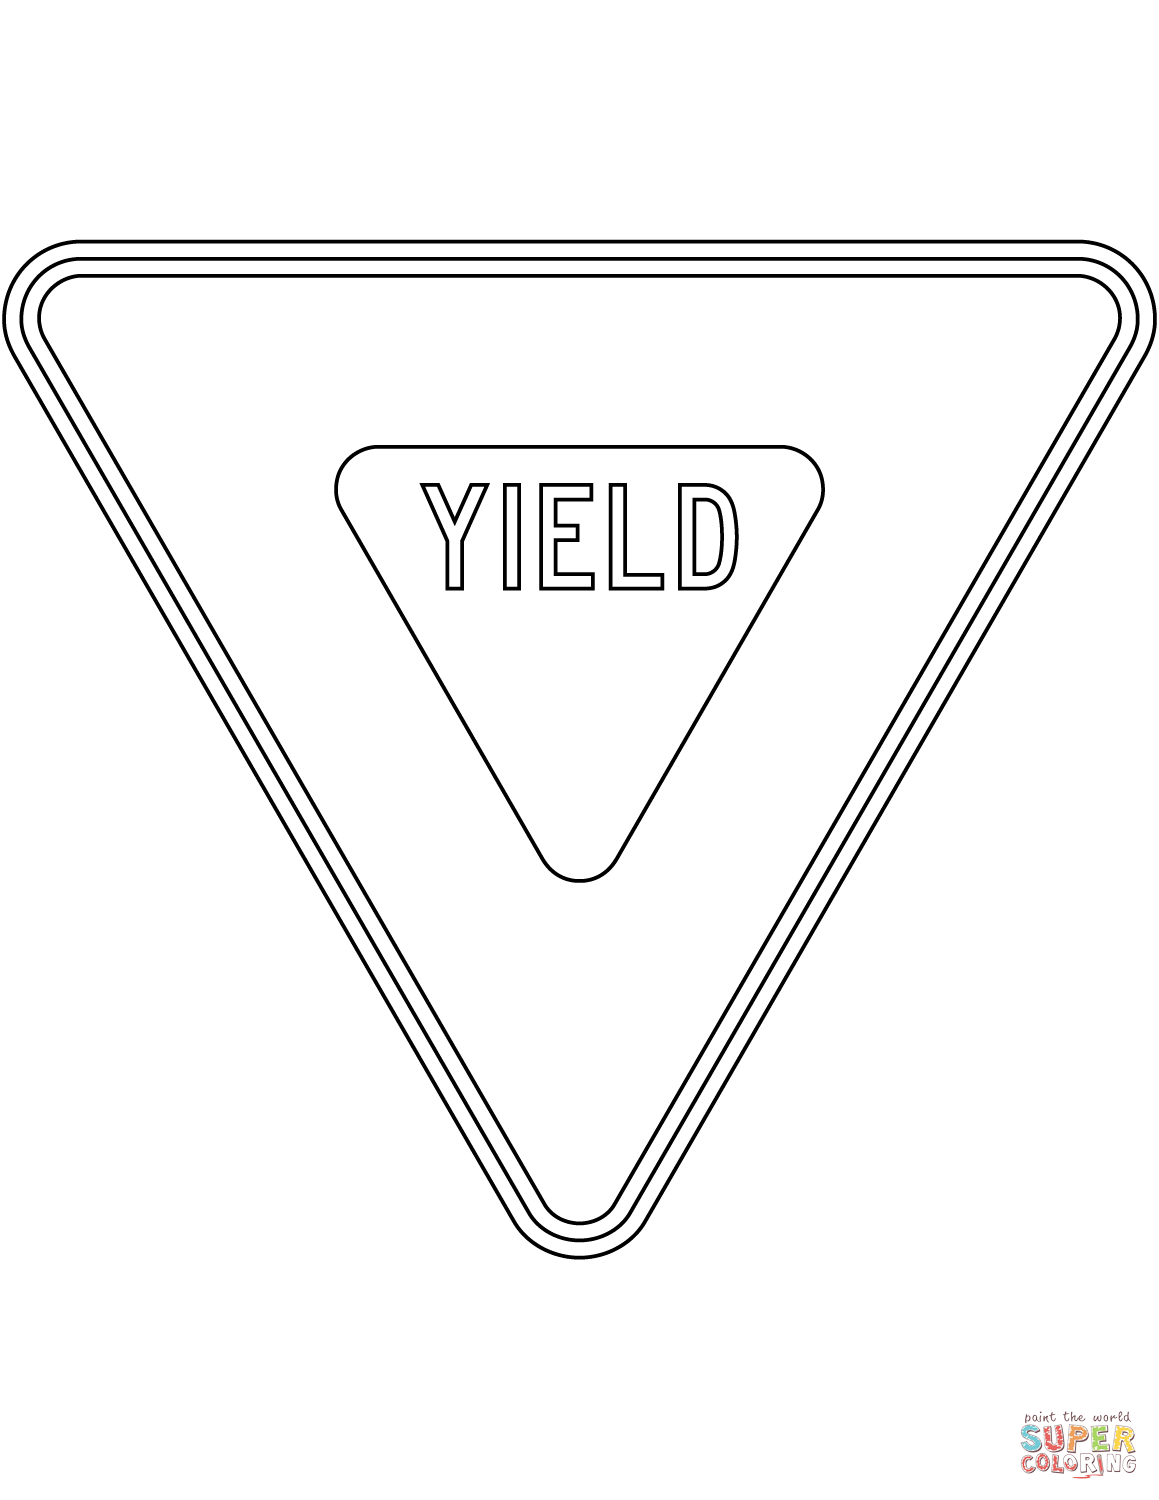 Image Result For Yield Sign To Color Preescolar